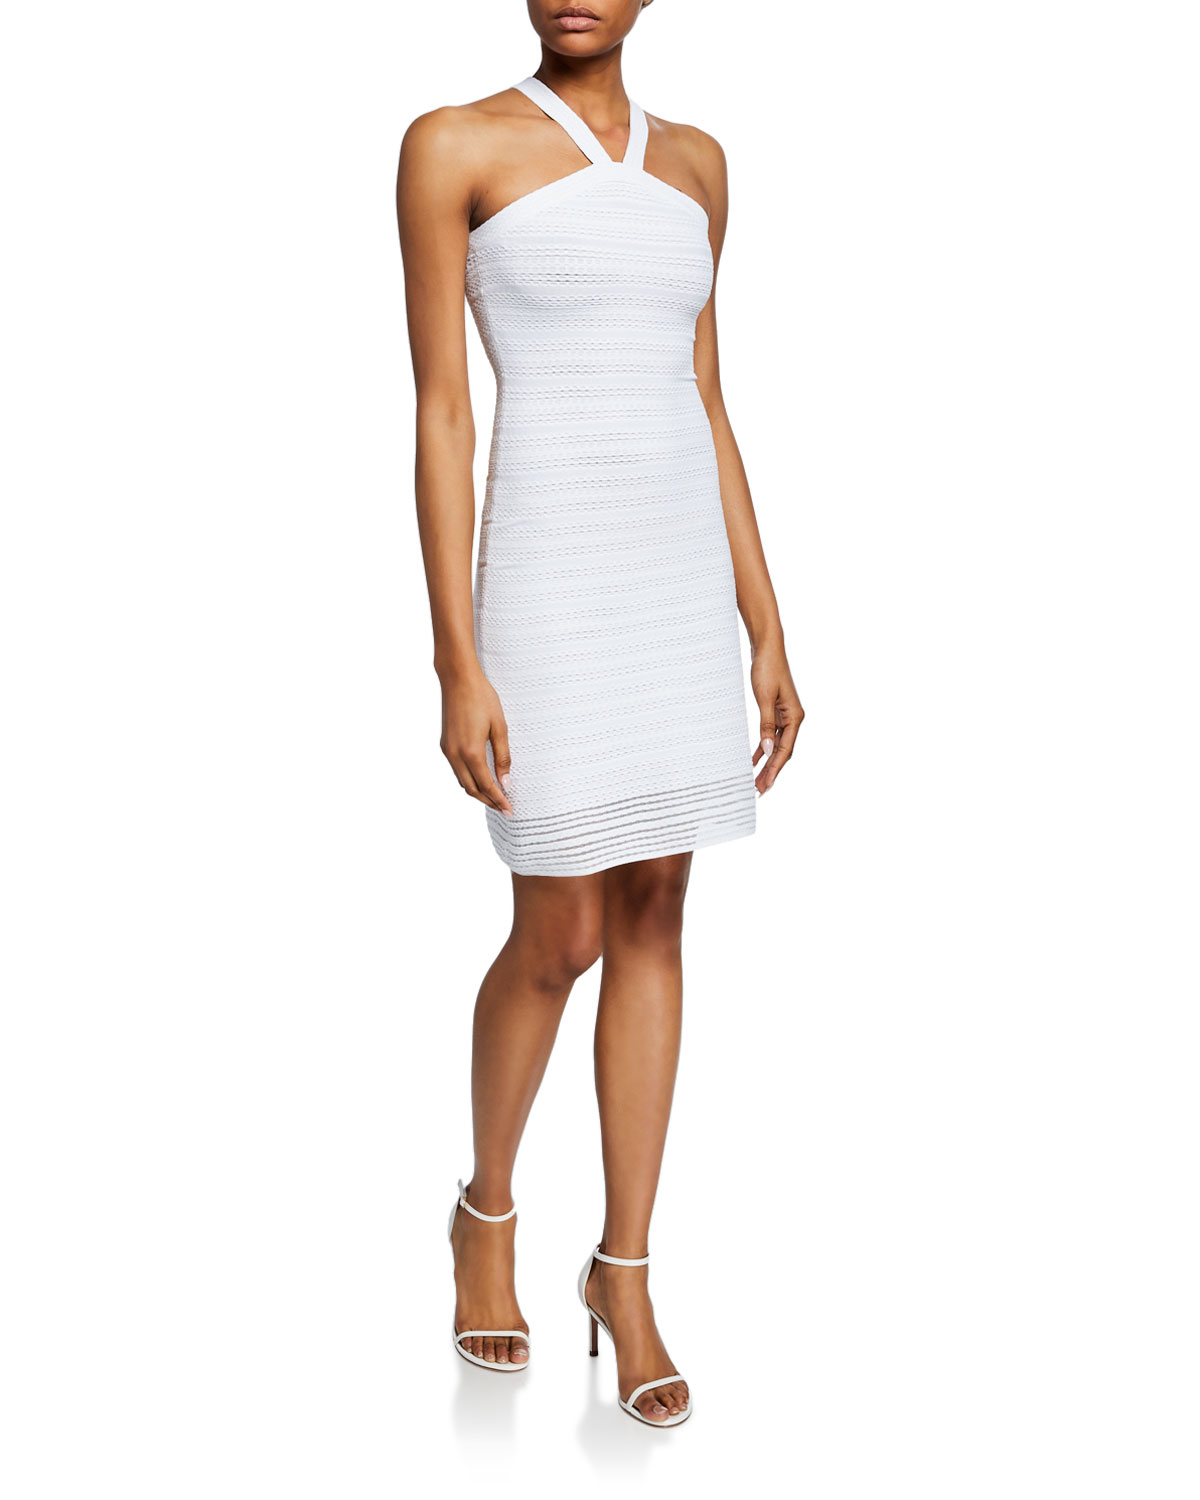 746395758ea AlaÏA Brocart Ribbed Halter-Neck Dress In White